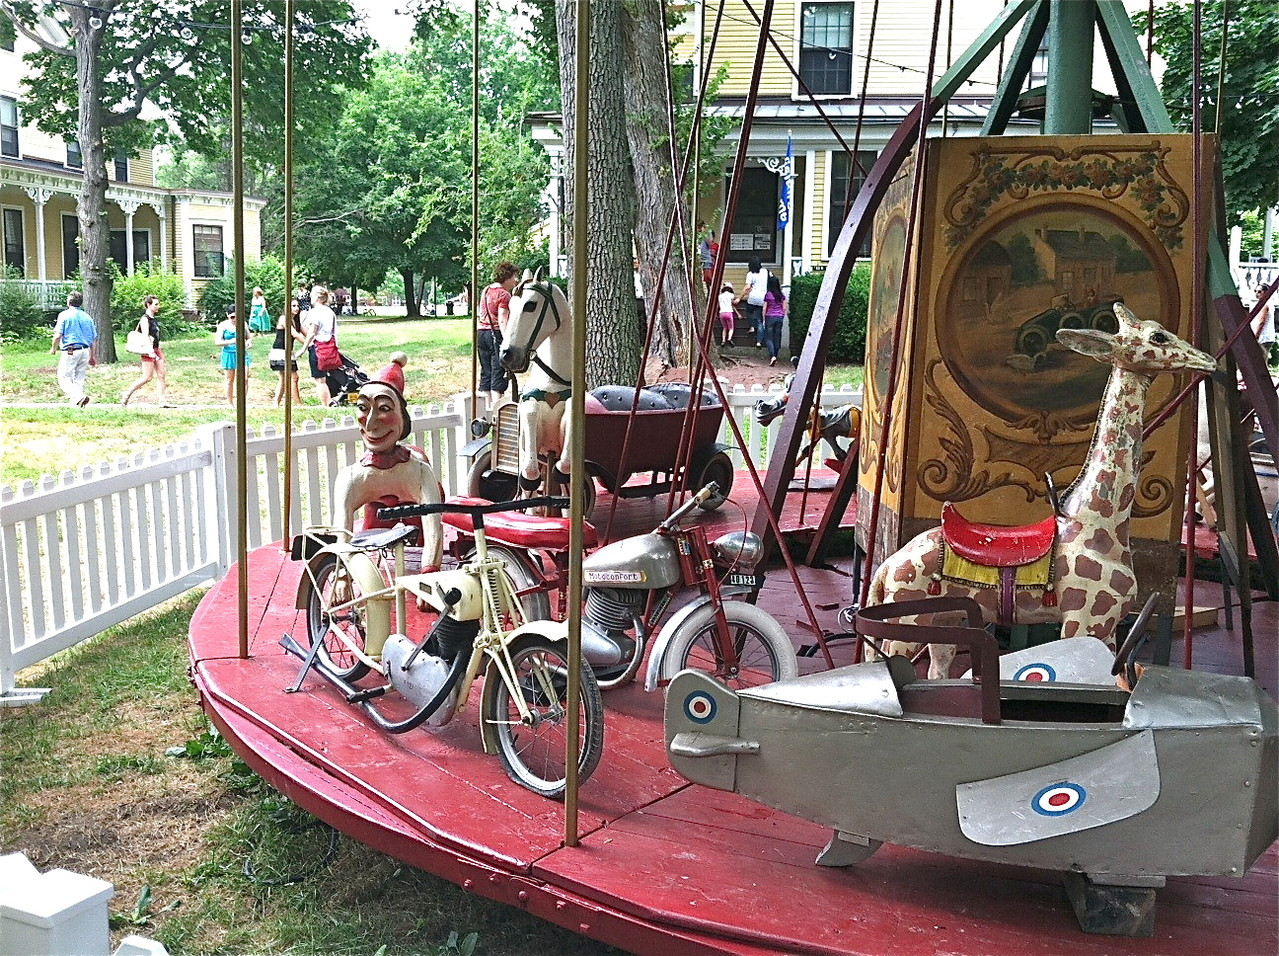 Antique French 1910 amusement park rides, Governor's Is. July 21, 2013